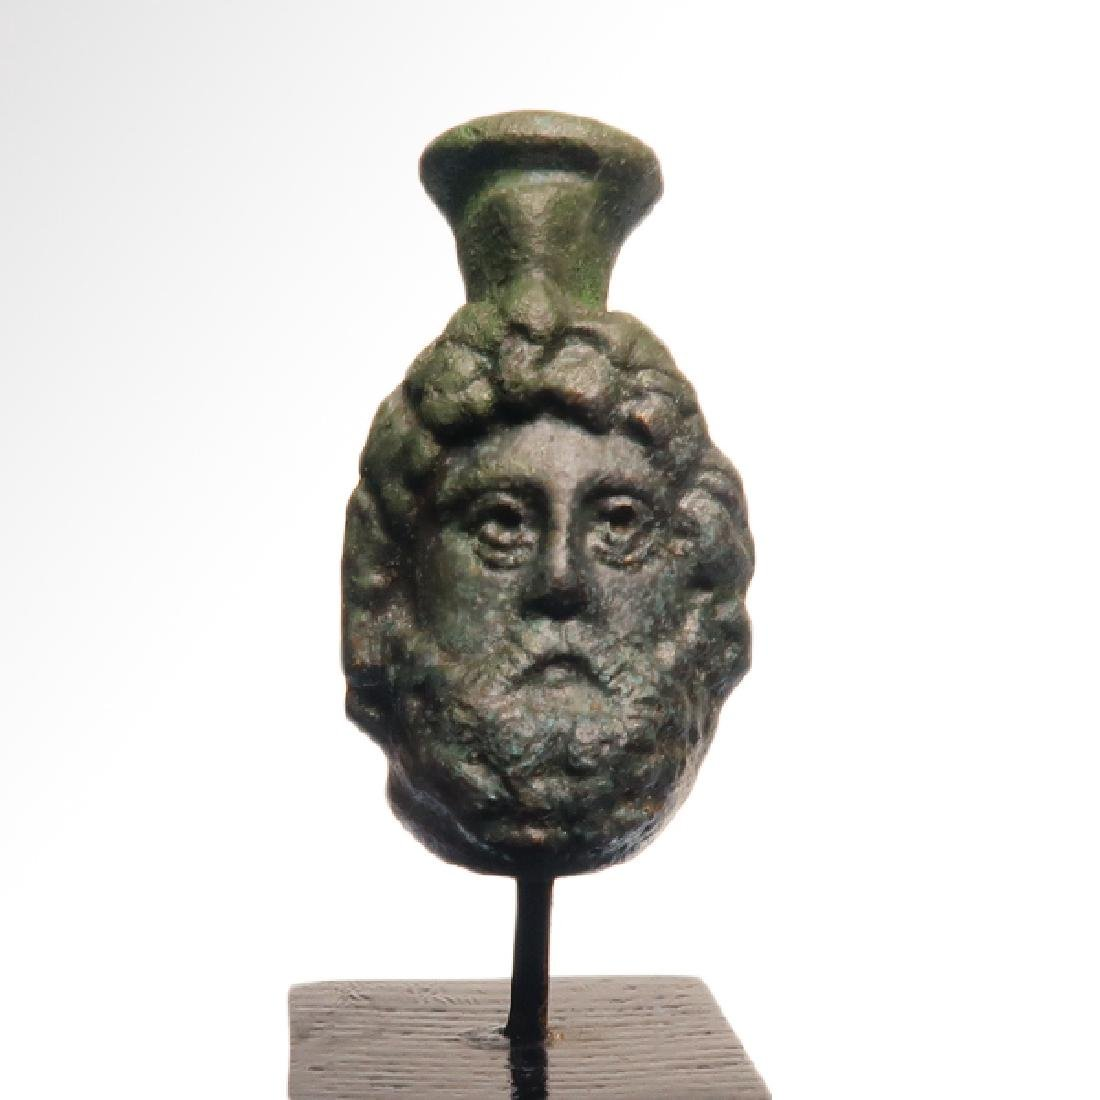 Roman Bronze Head of Zeus-Serapis, c. 1st Century A.D.